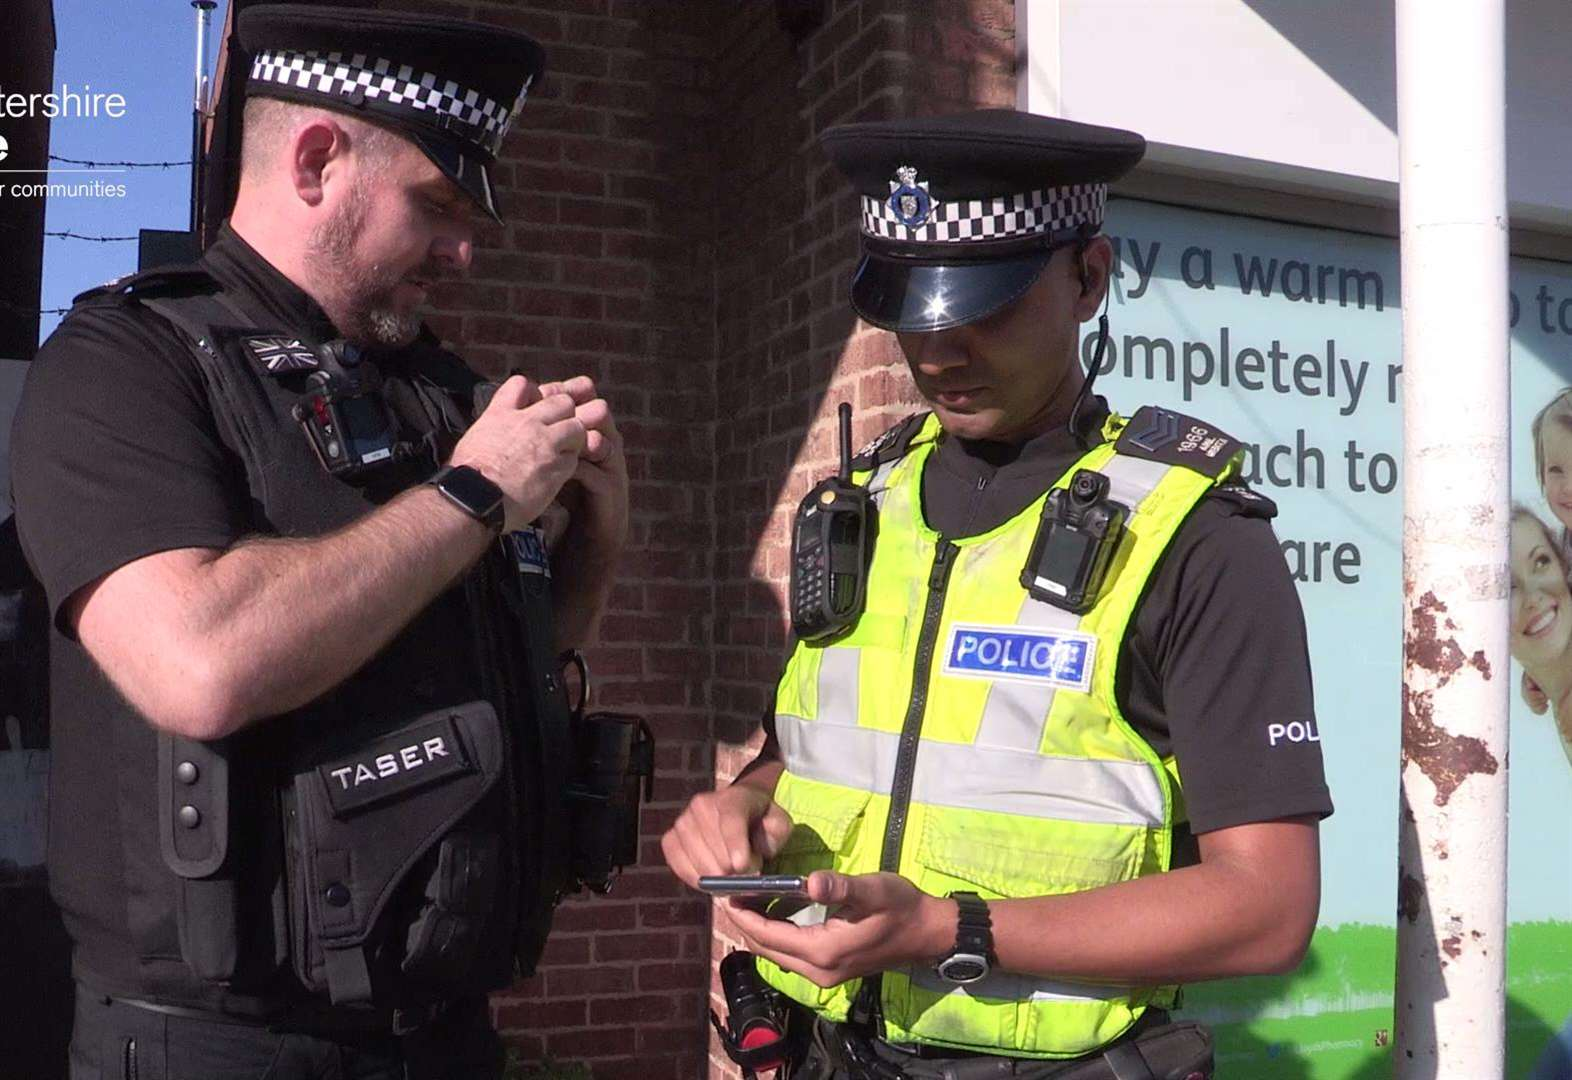 New mobile phone technology aids police